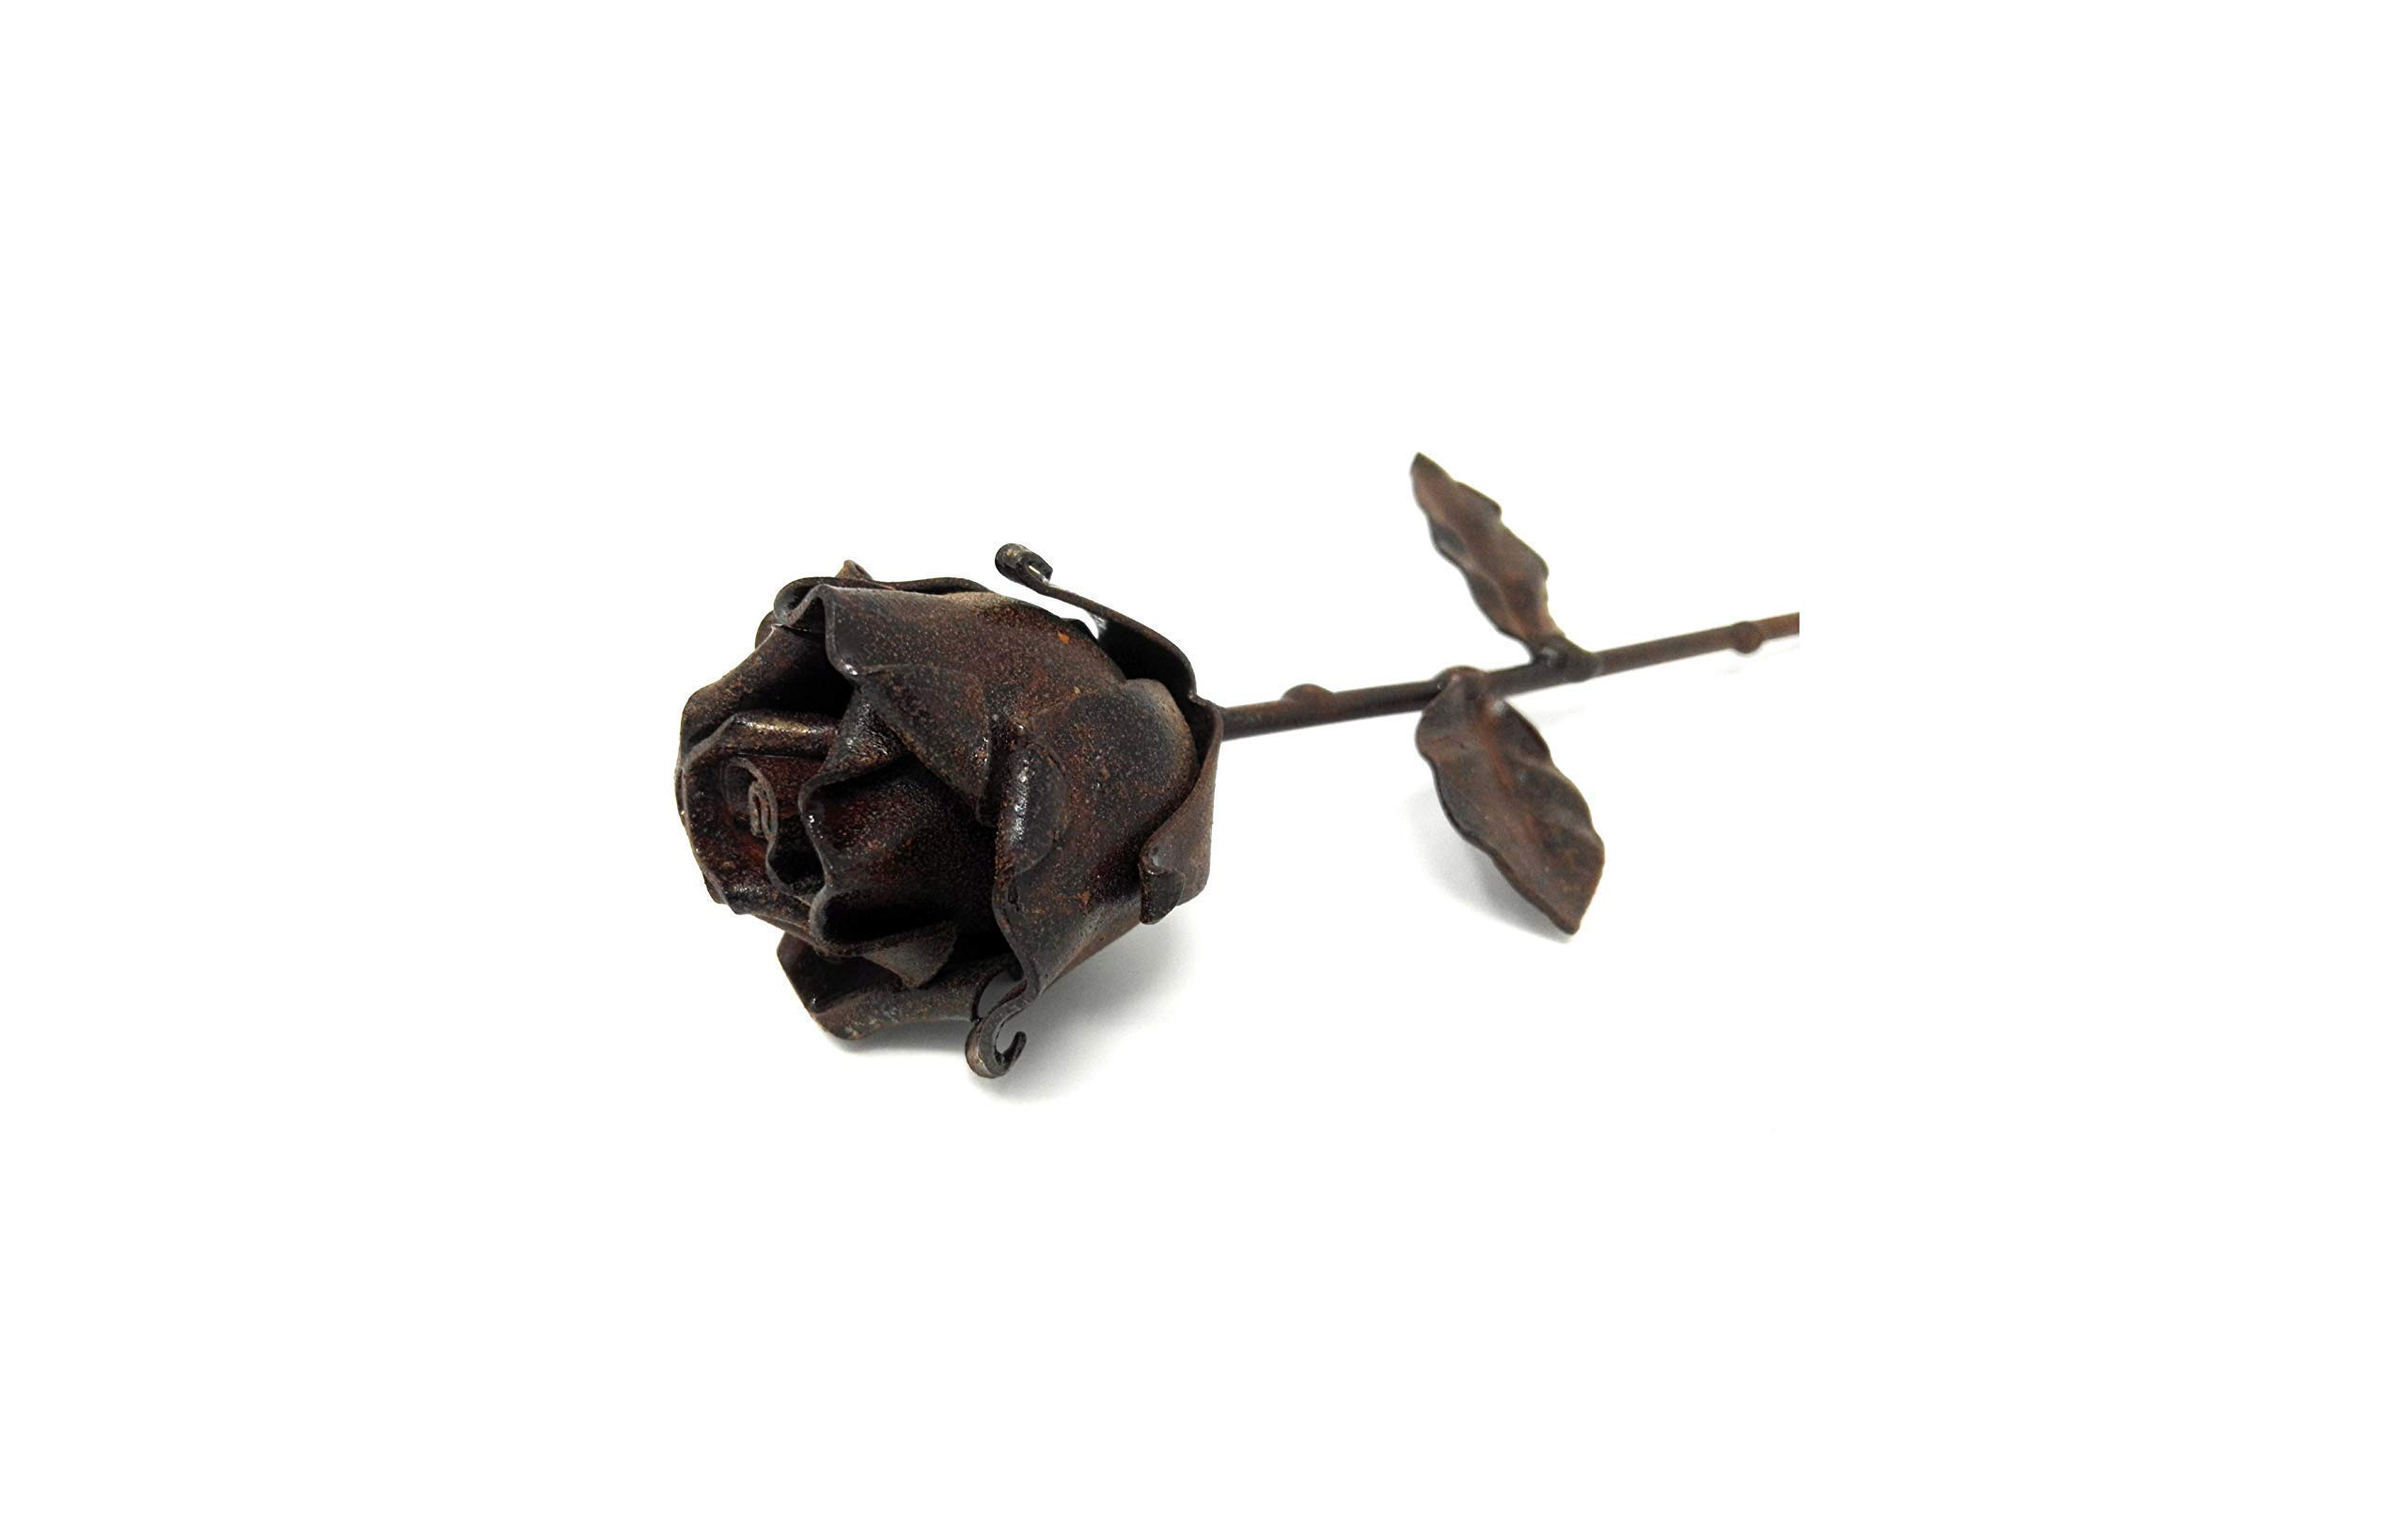 -Eternal-Rose-Hand-Forged-Wrought-Iron-RustedIdeal-gift-for-Valentines-Day-Girlfriend-Mothers-Day-Couple-Christmas-Wedding-Day-Anniversary-Decor-IndoorOutdoor